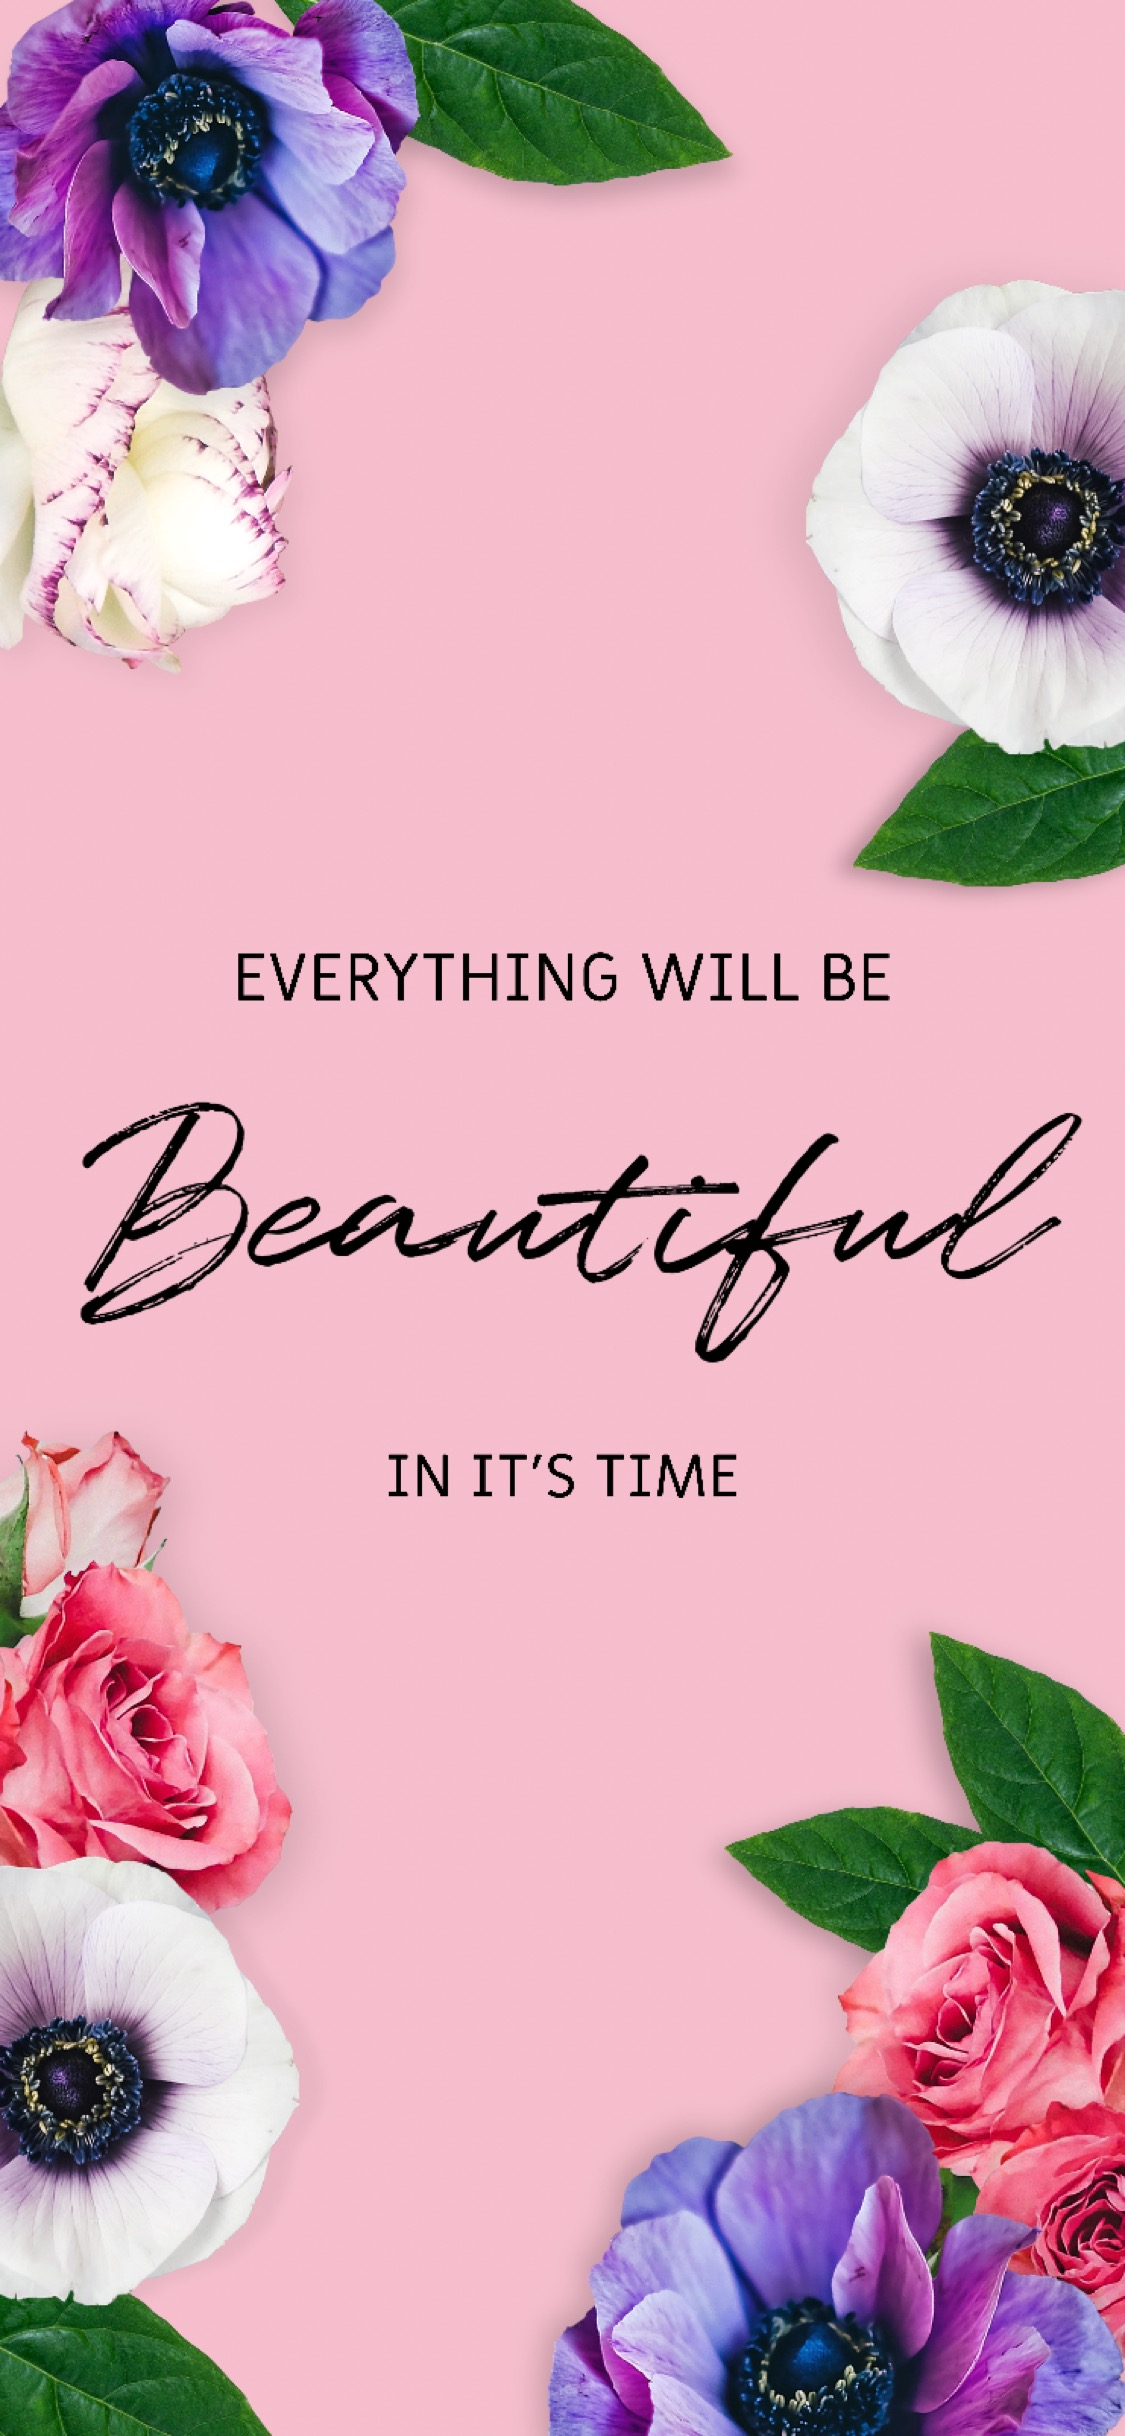 Everything will be Beautiful in it's time - for lockscreen